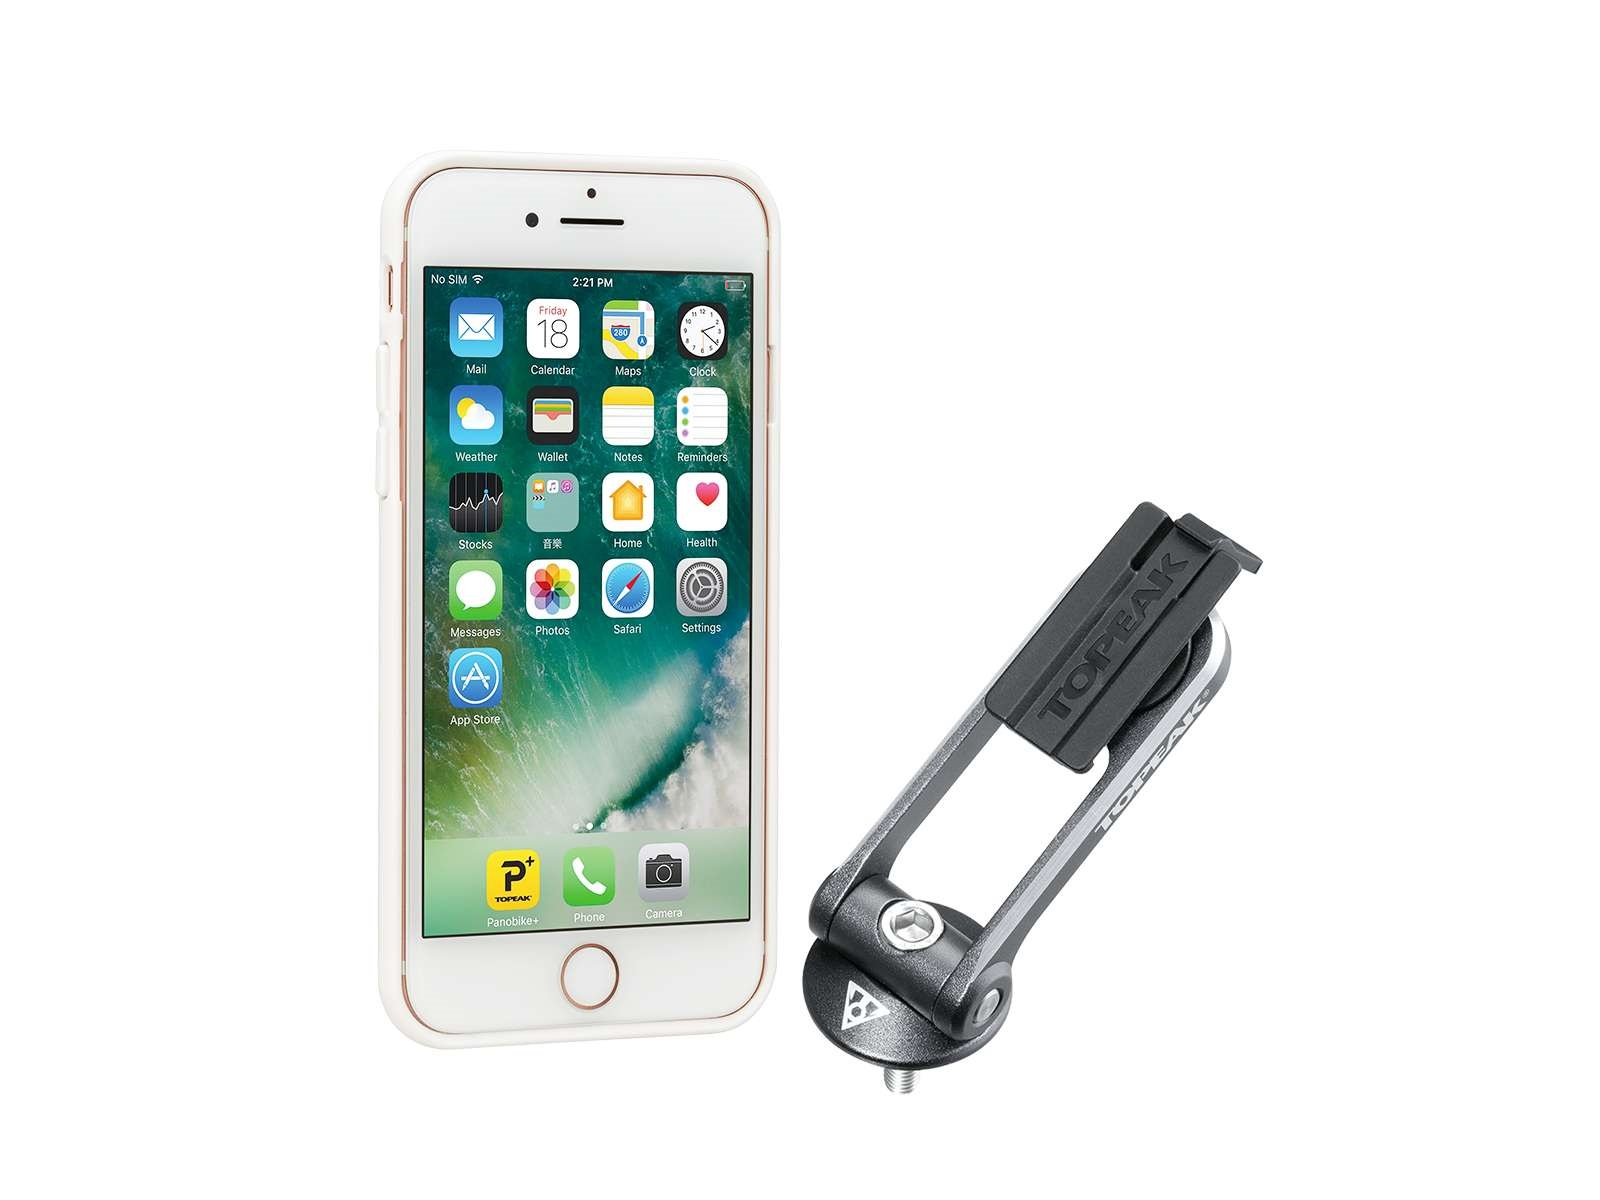 Topeak Ridecase Phone Holder For Iphone 6/6S/7 - White